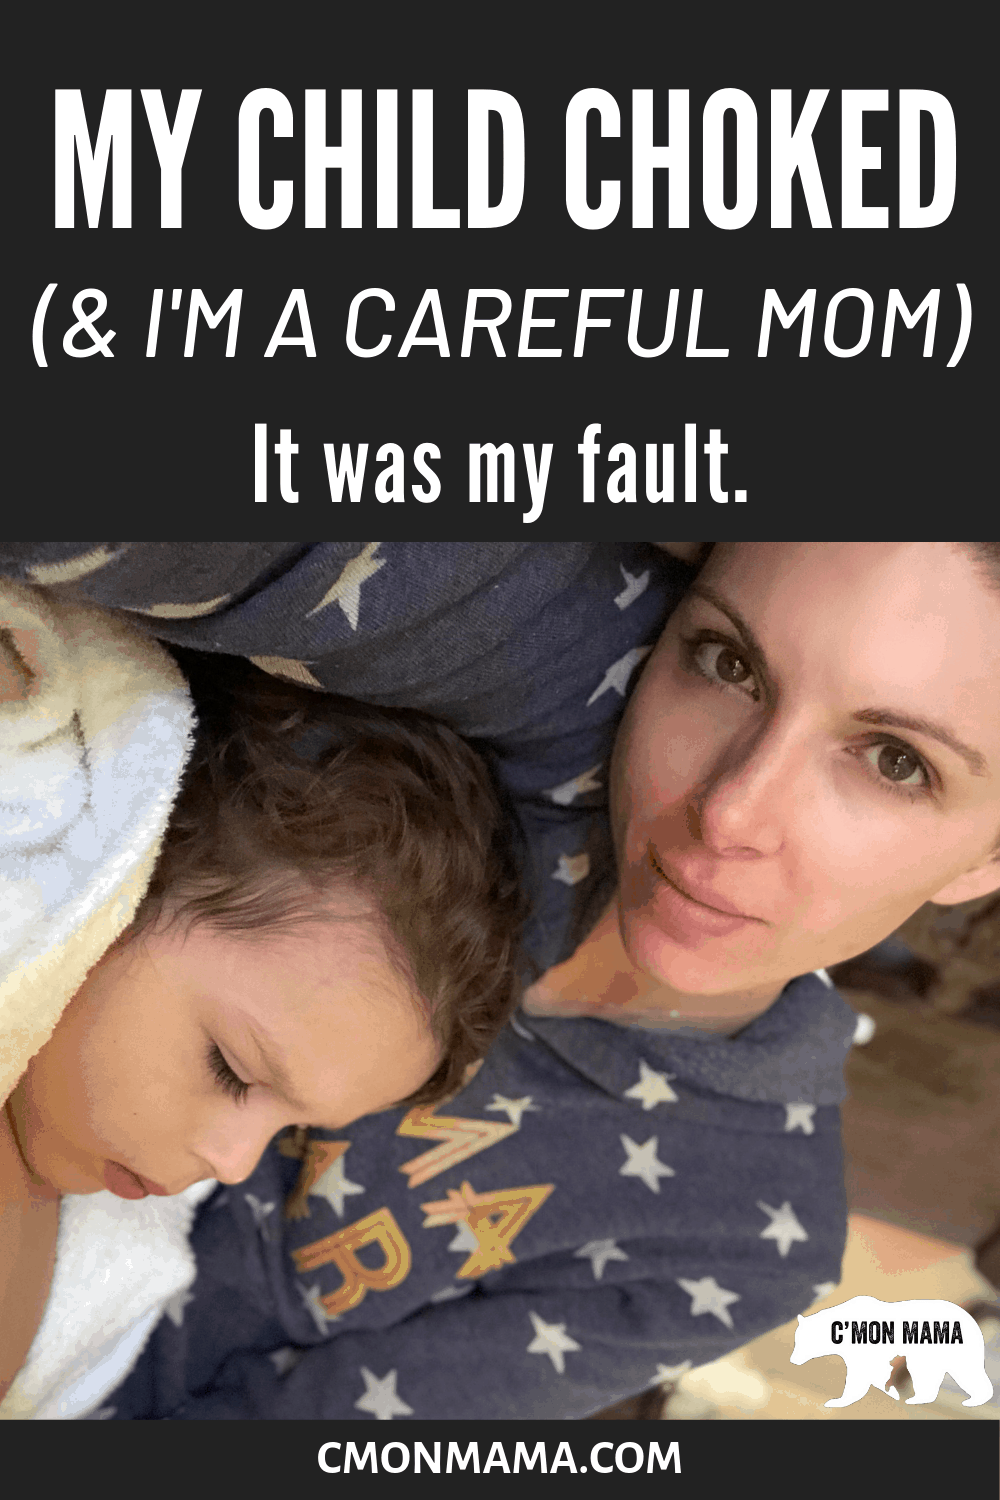 My Child Choked (& I'm a careful Mom). It was my fault.